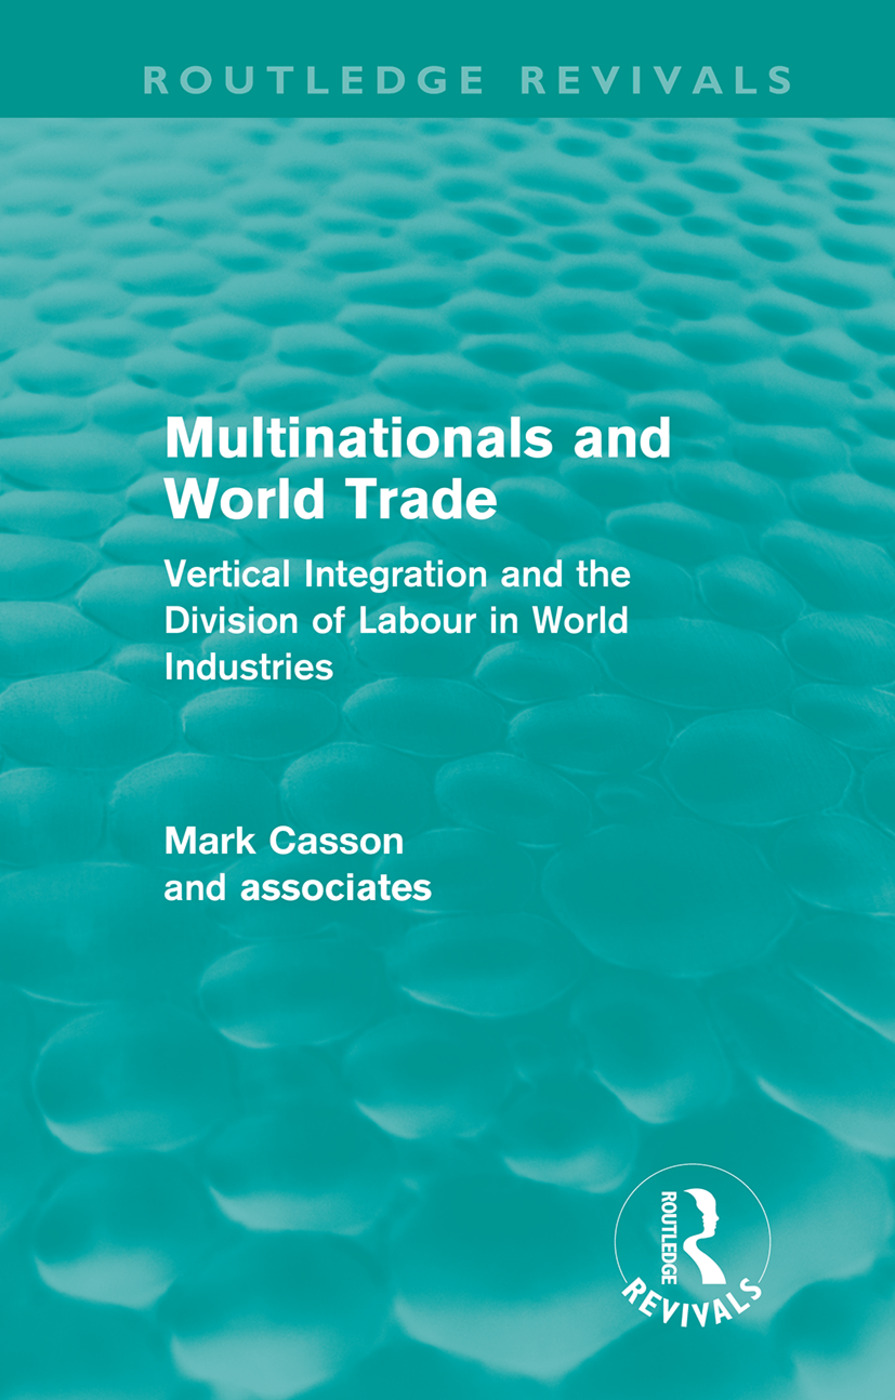 Multinationals and World Trade (Routledge Revivals): Vertical Integration and the Division of Labour in World Industries (Hardback) book cover